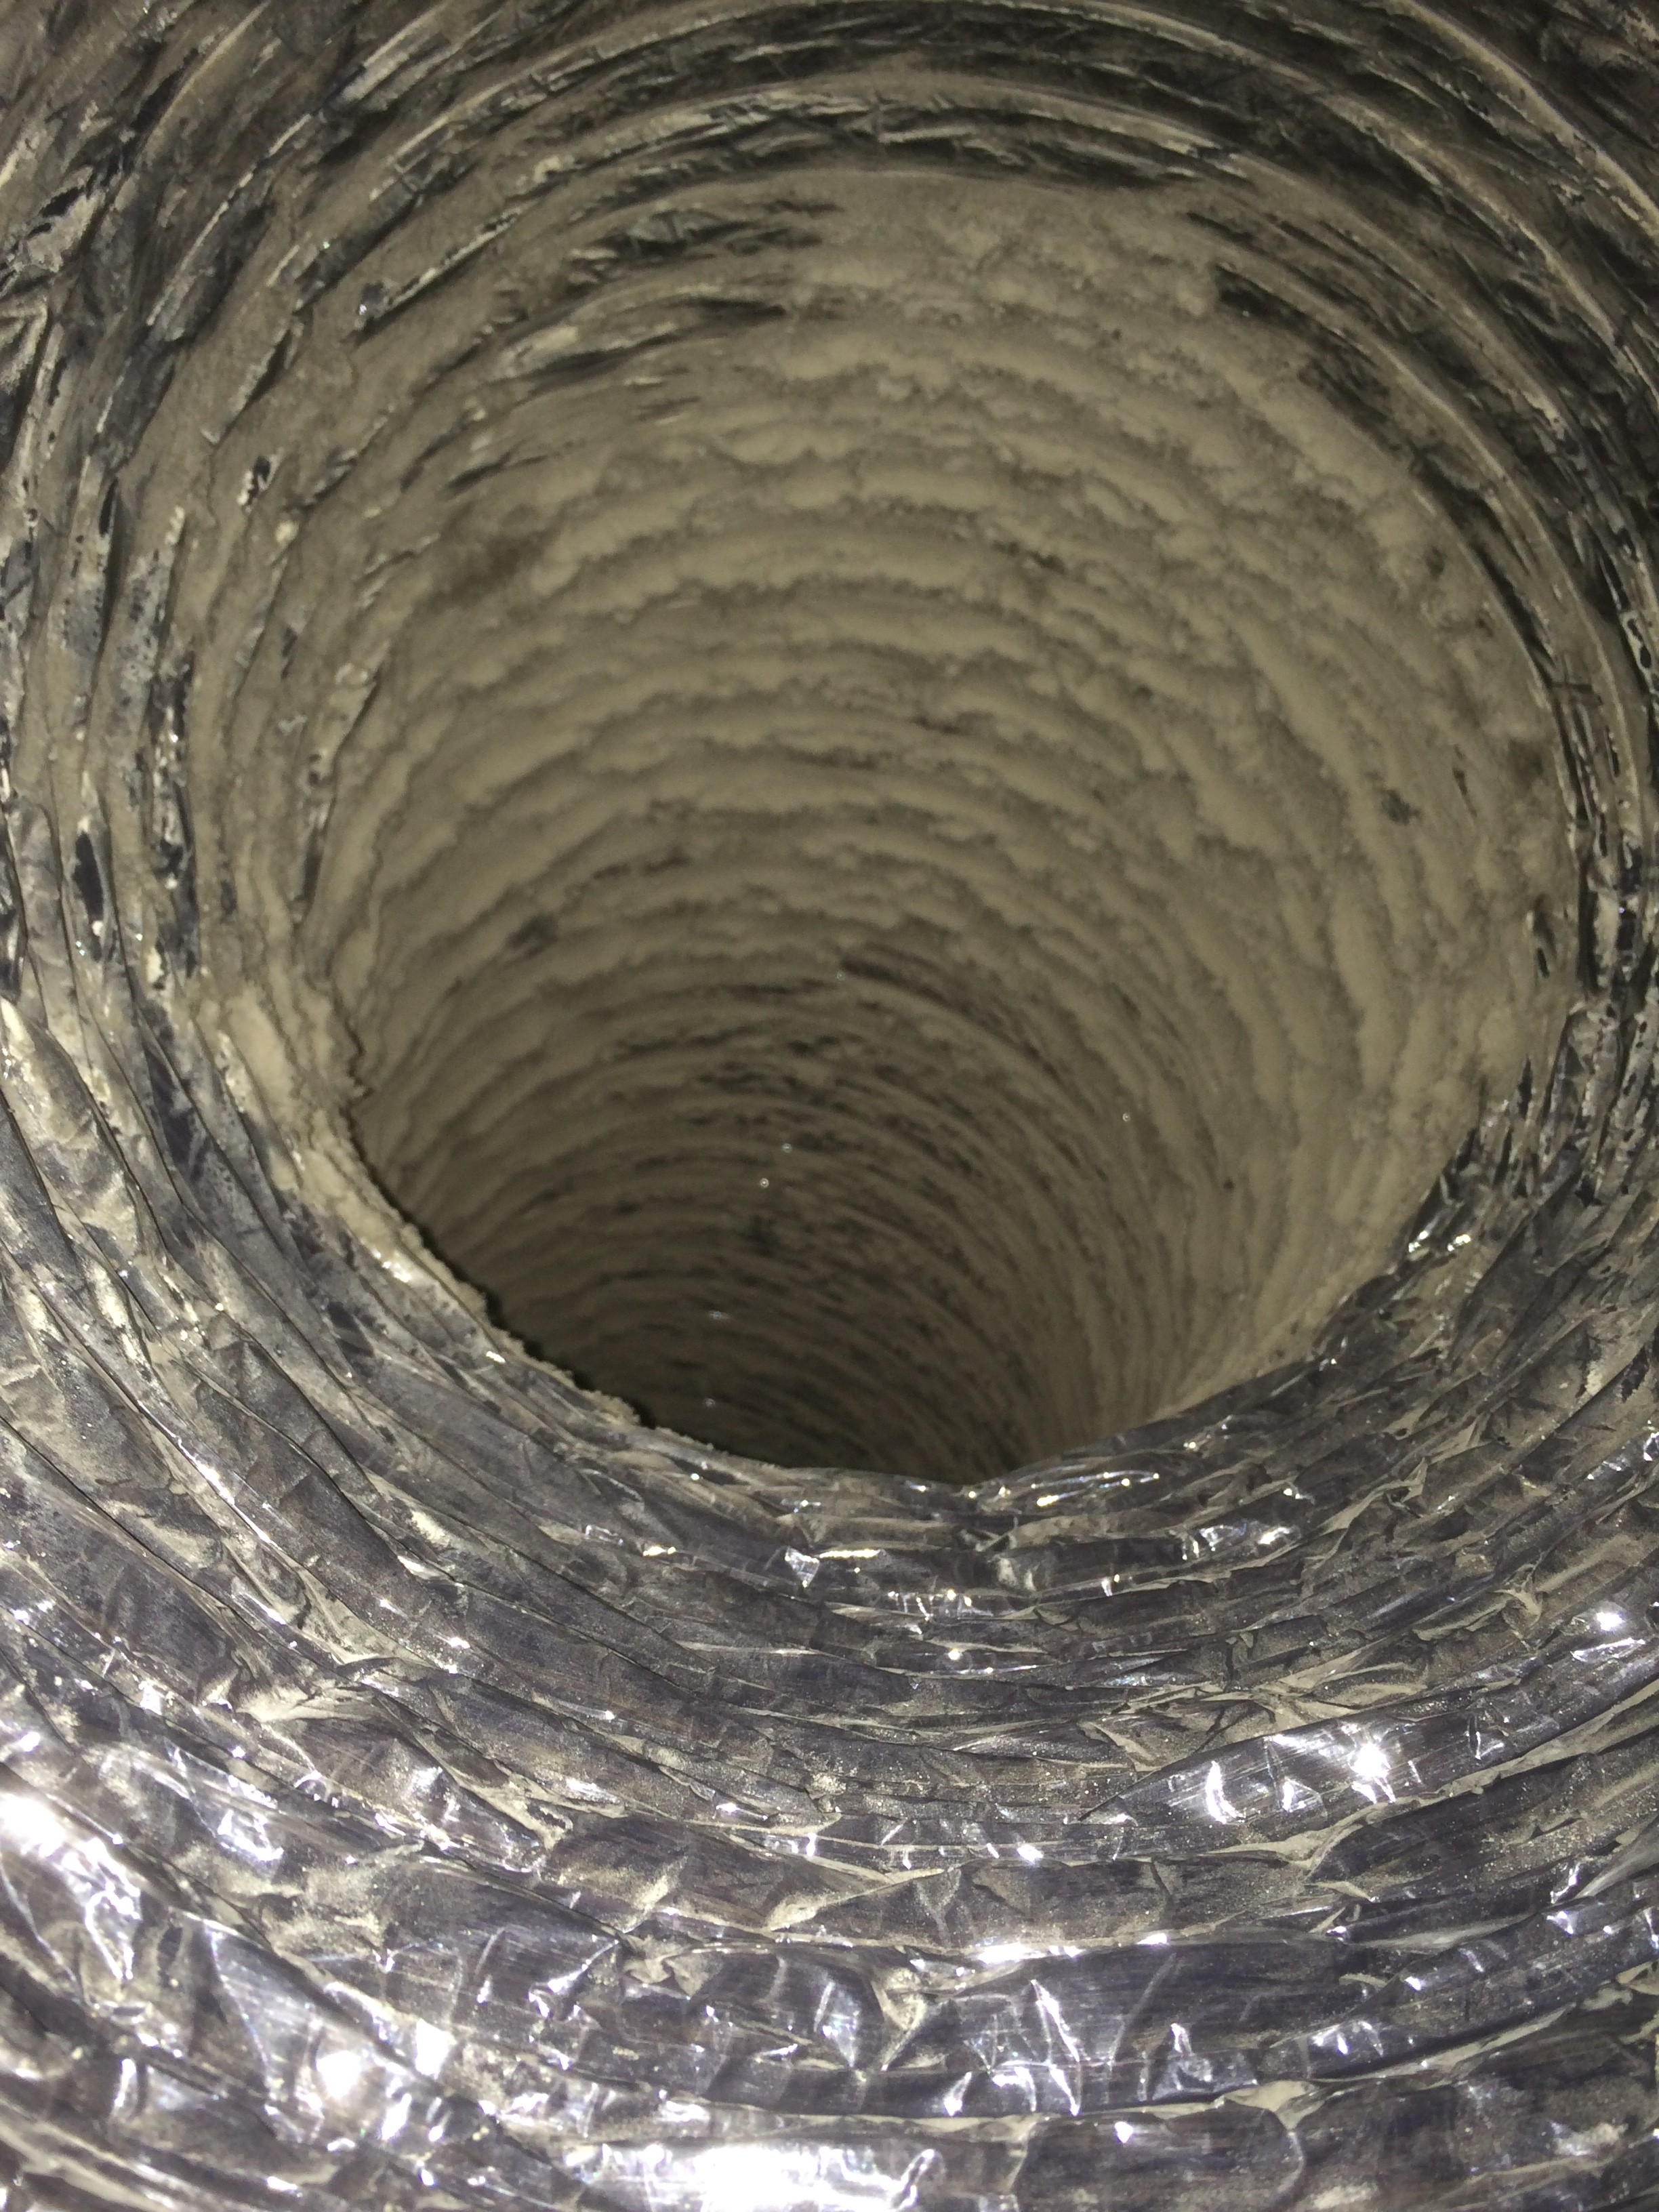 #67604D Why Should I Have My Air Ducts Cleaned? A.J. Perri Most Effective 7325 Whole House Duct Cleaning pictures with 3264x2448 px on helpvideos.info - Air Conditioners, Air Coolers and more